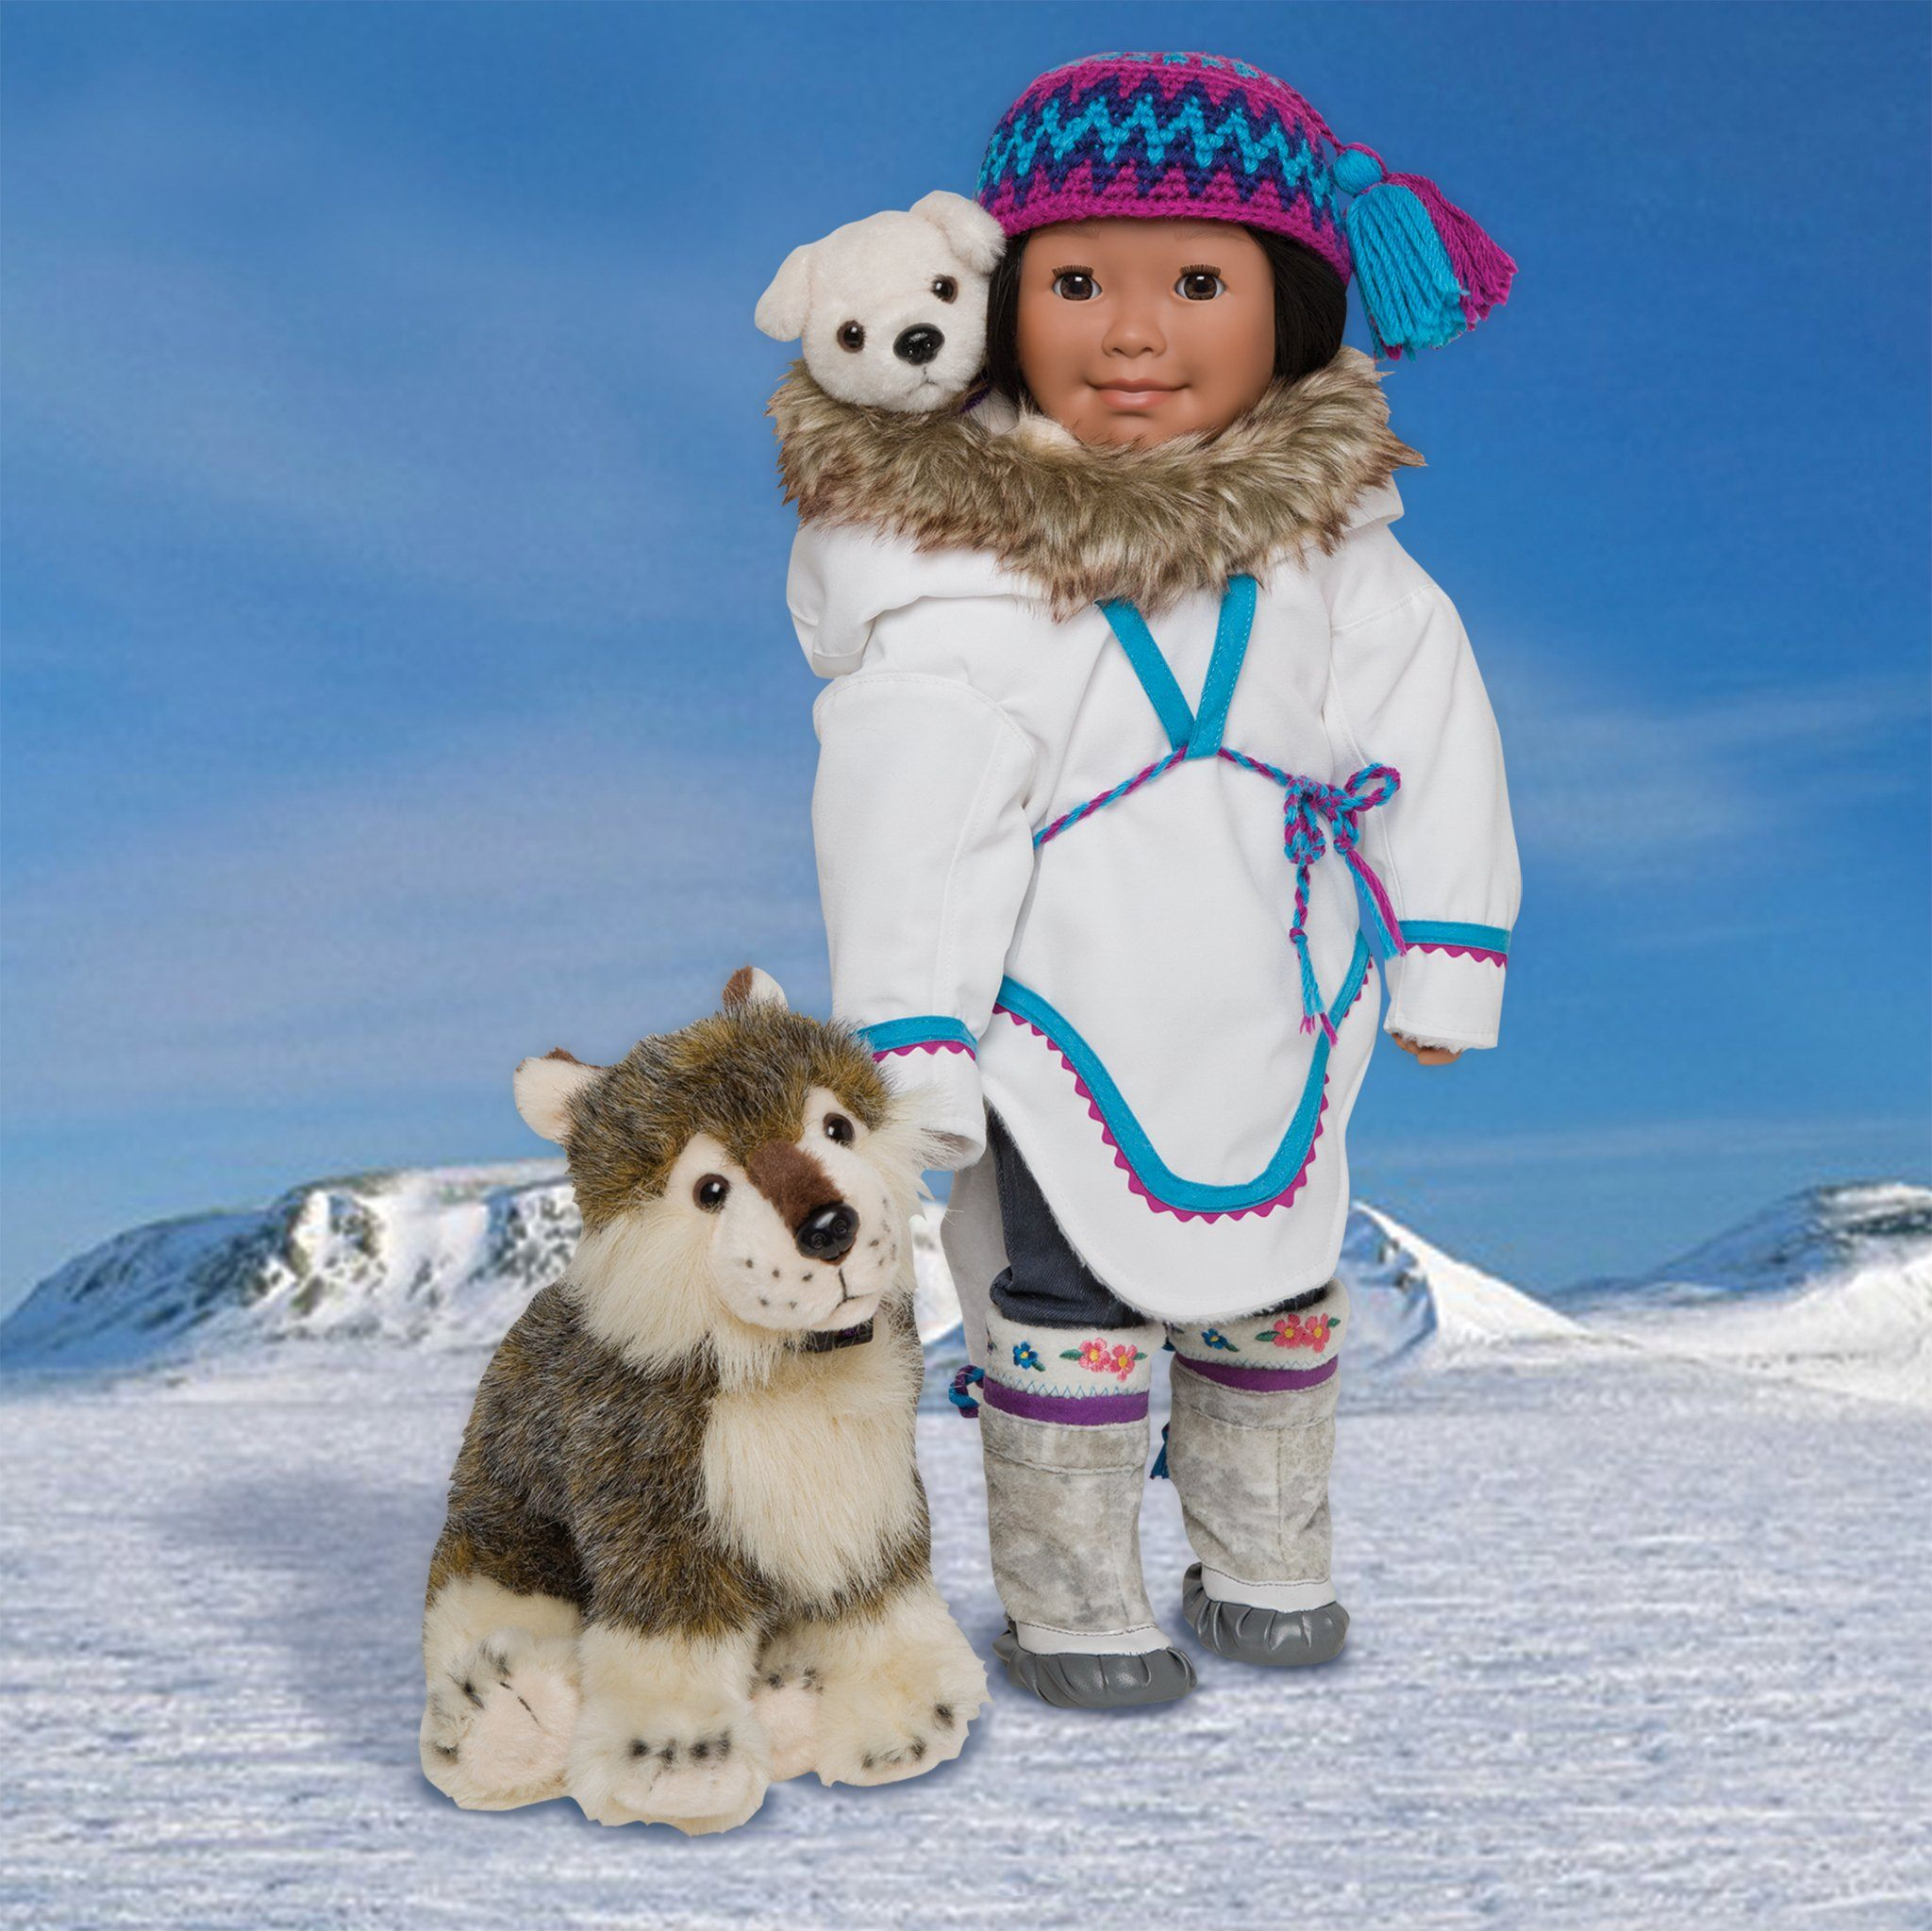 Amauti is on Maplelea doll Saila with Pang Hat and 2 dogs Nuklilik and Nanuq in Nunavut scene